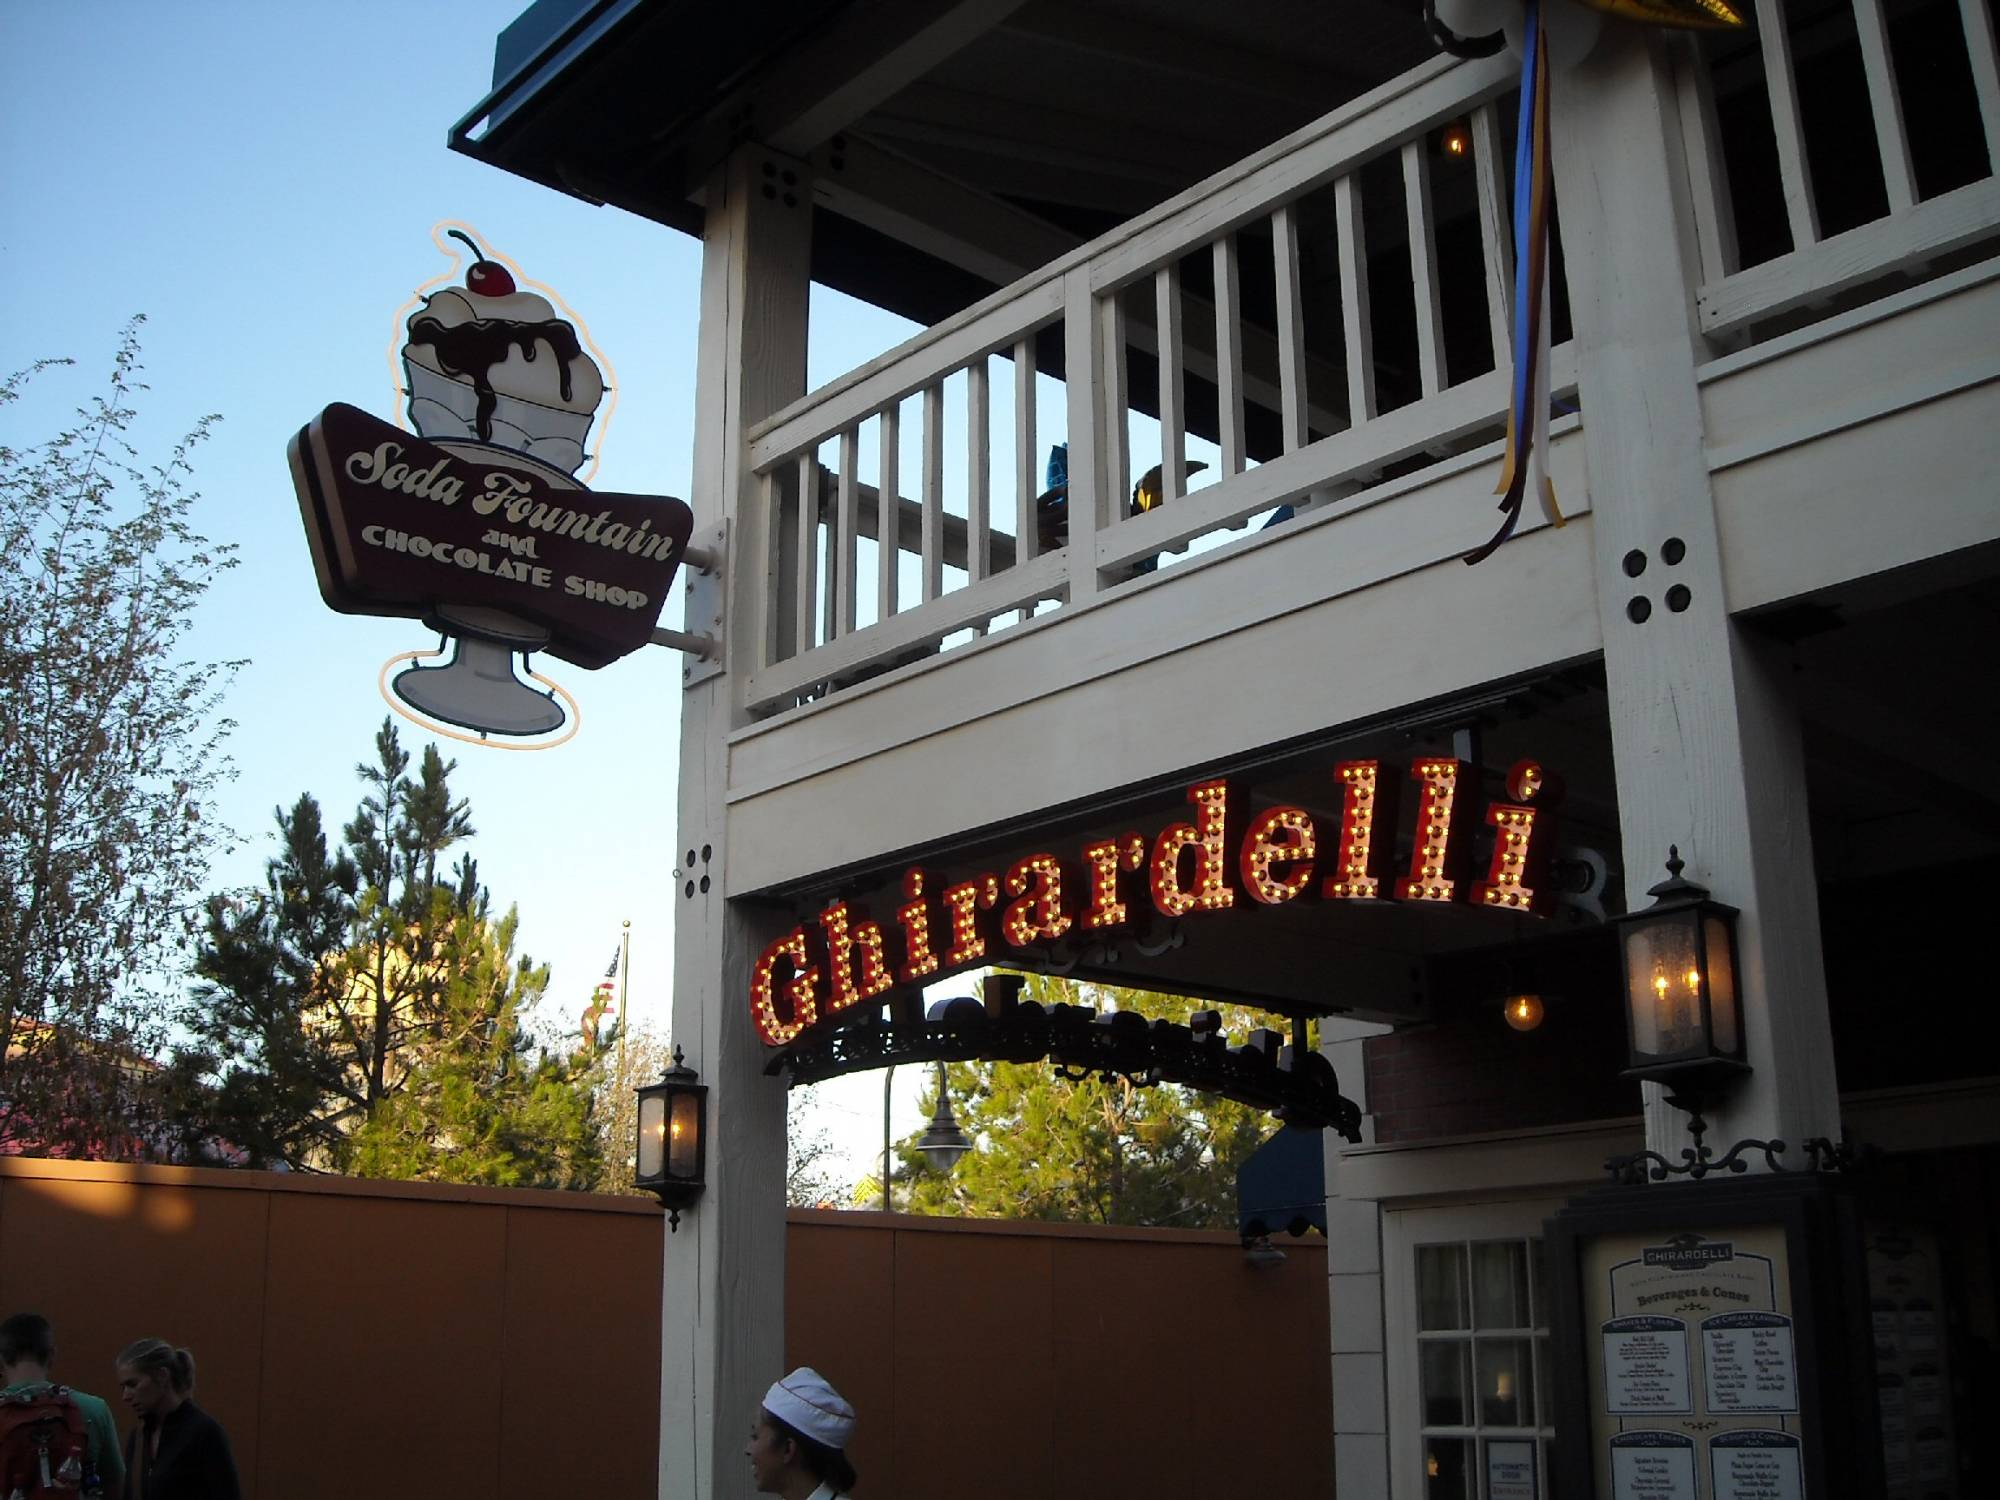 Indulge in a chocolate treat from the Ghirardelli Factory Store at Disney California Adventure |PassPorter.com